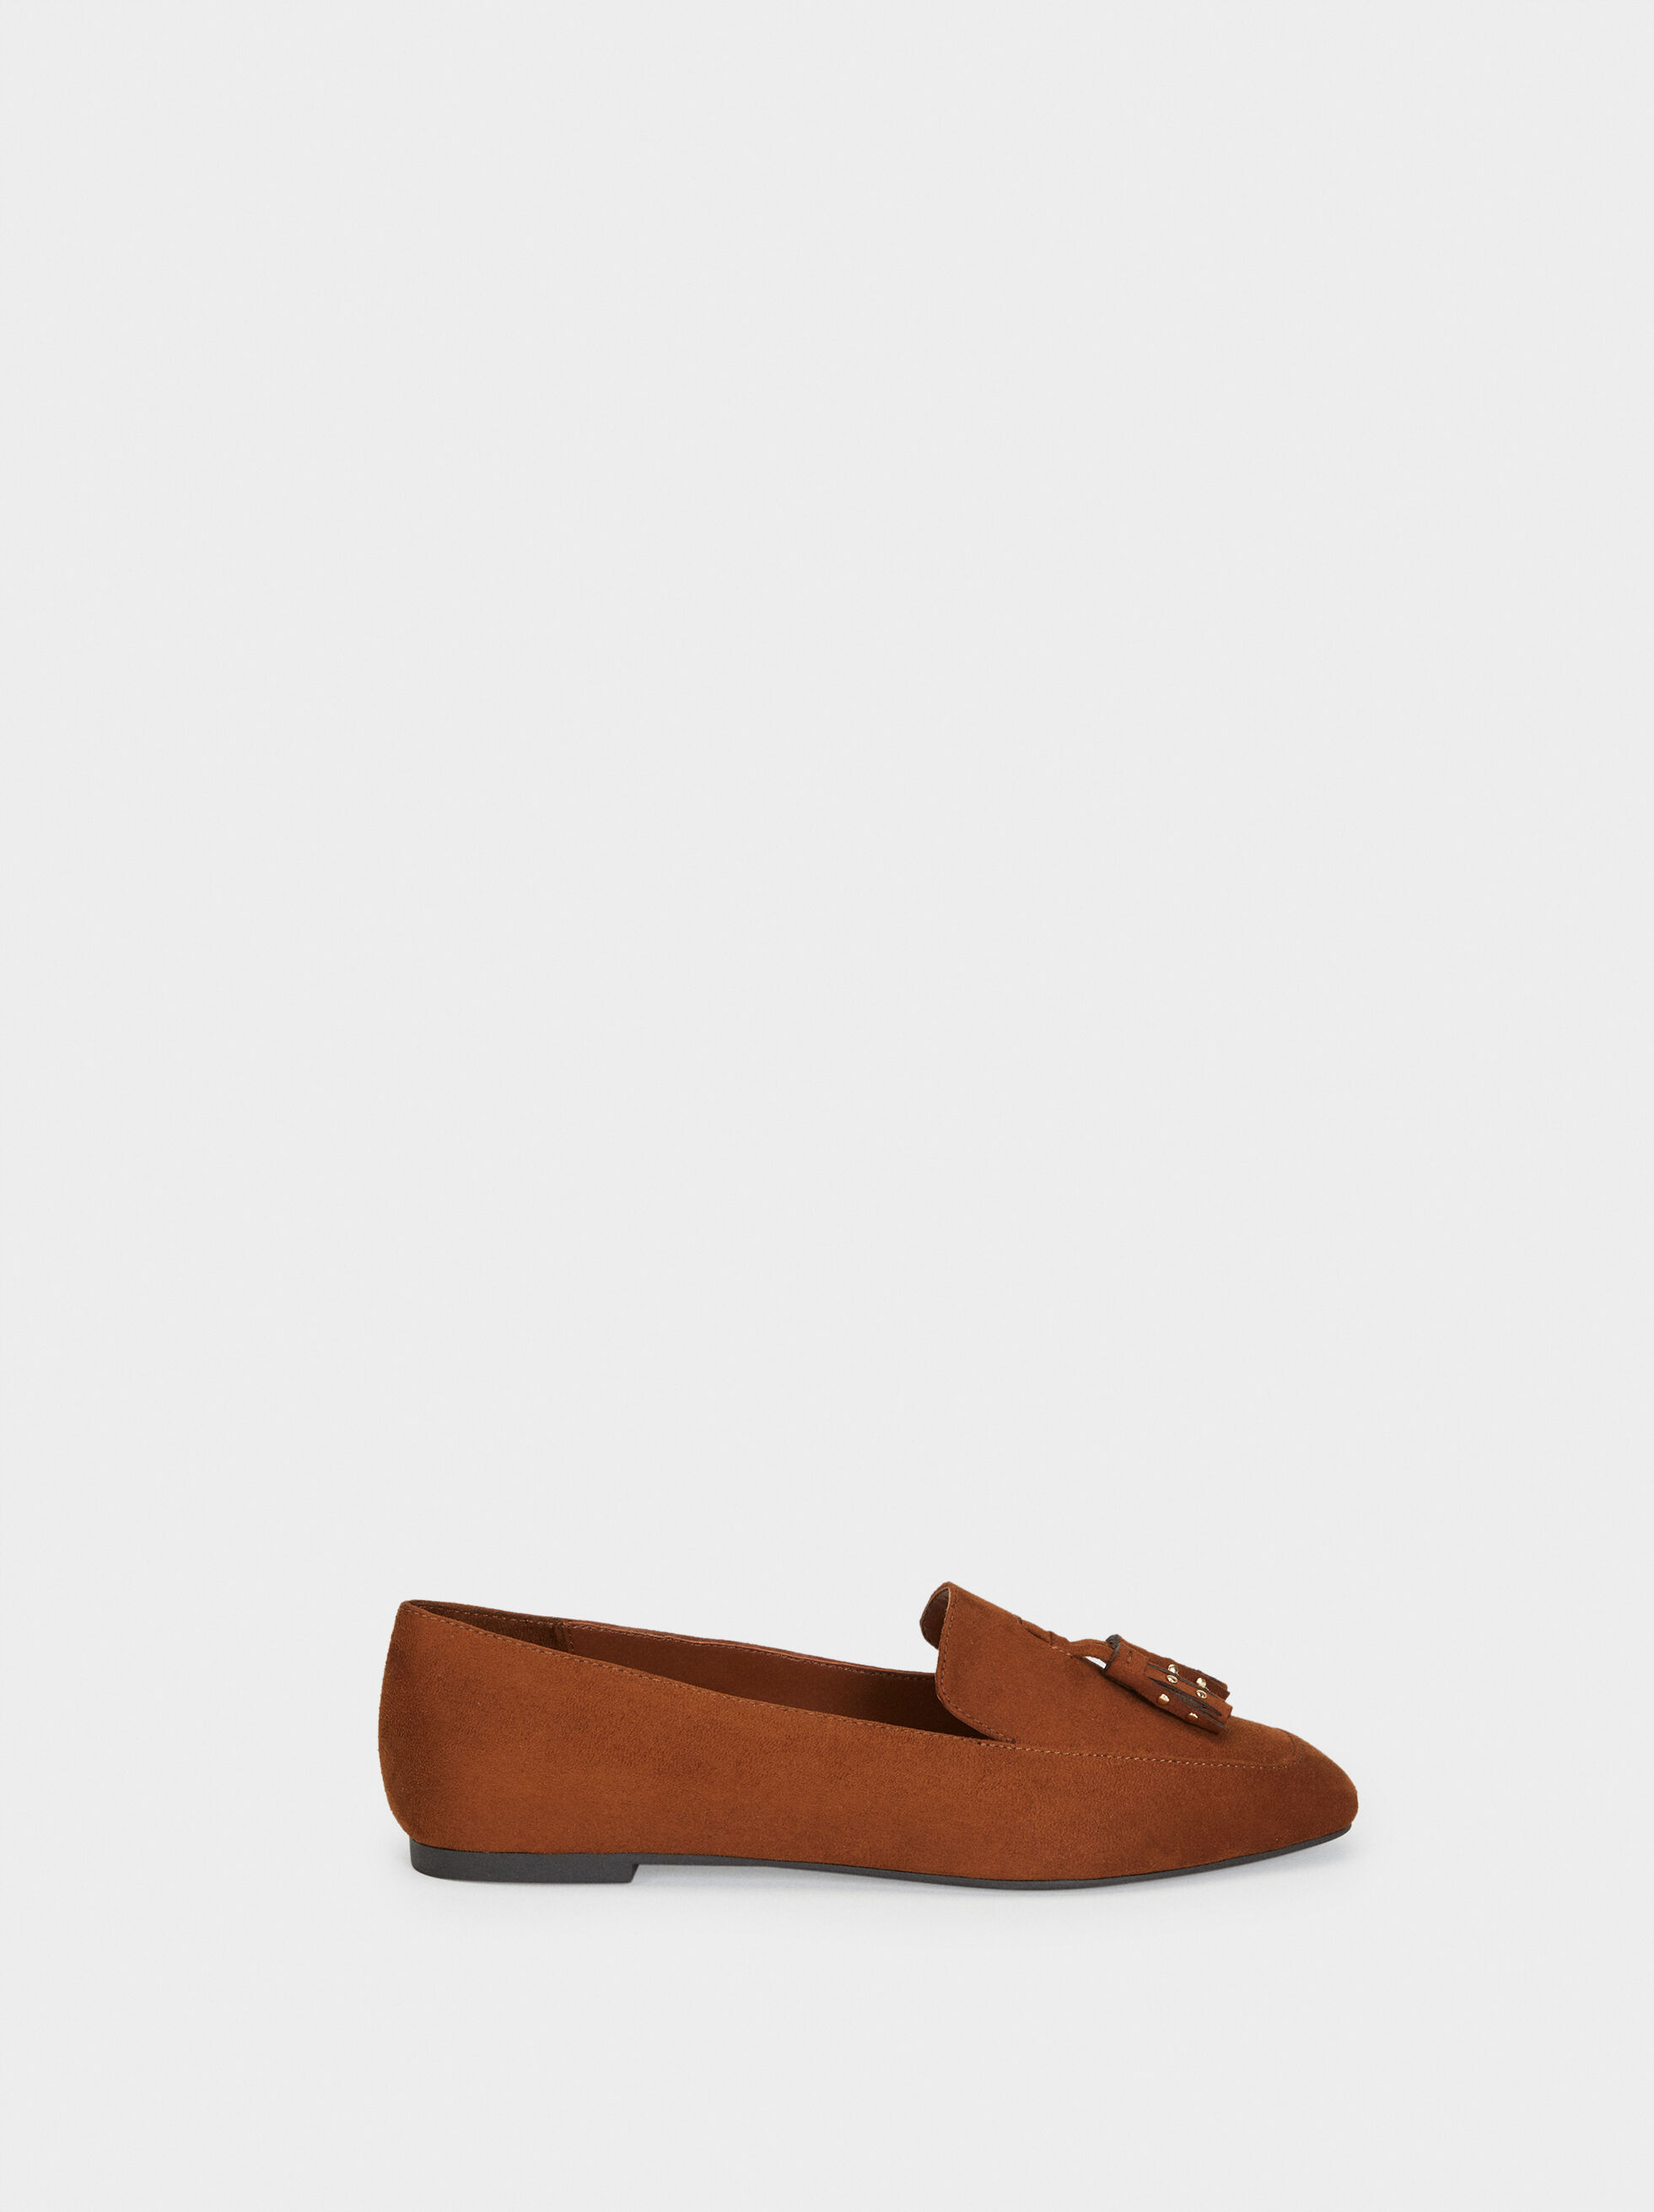 Tasselled Loafers, , hi-res